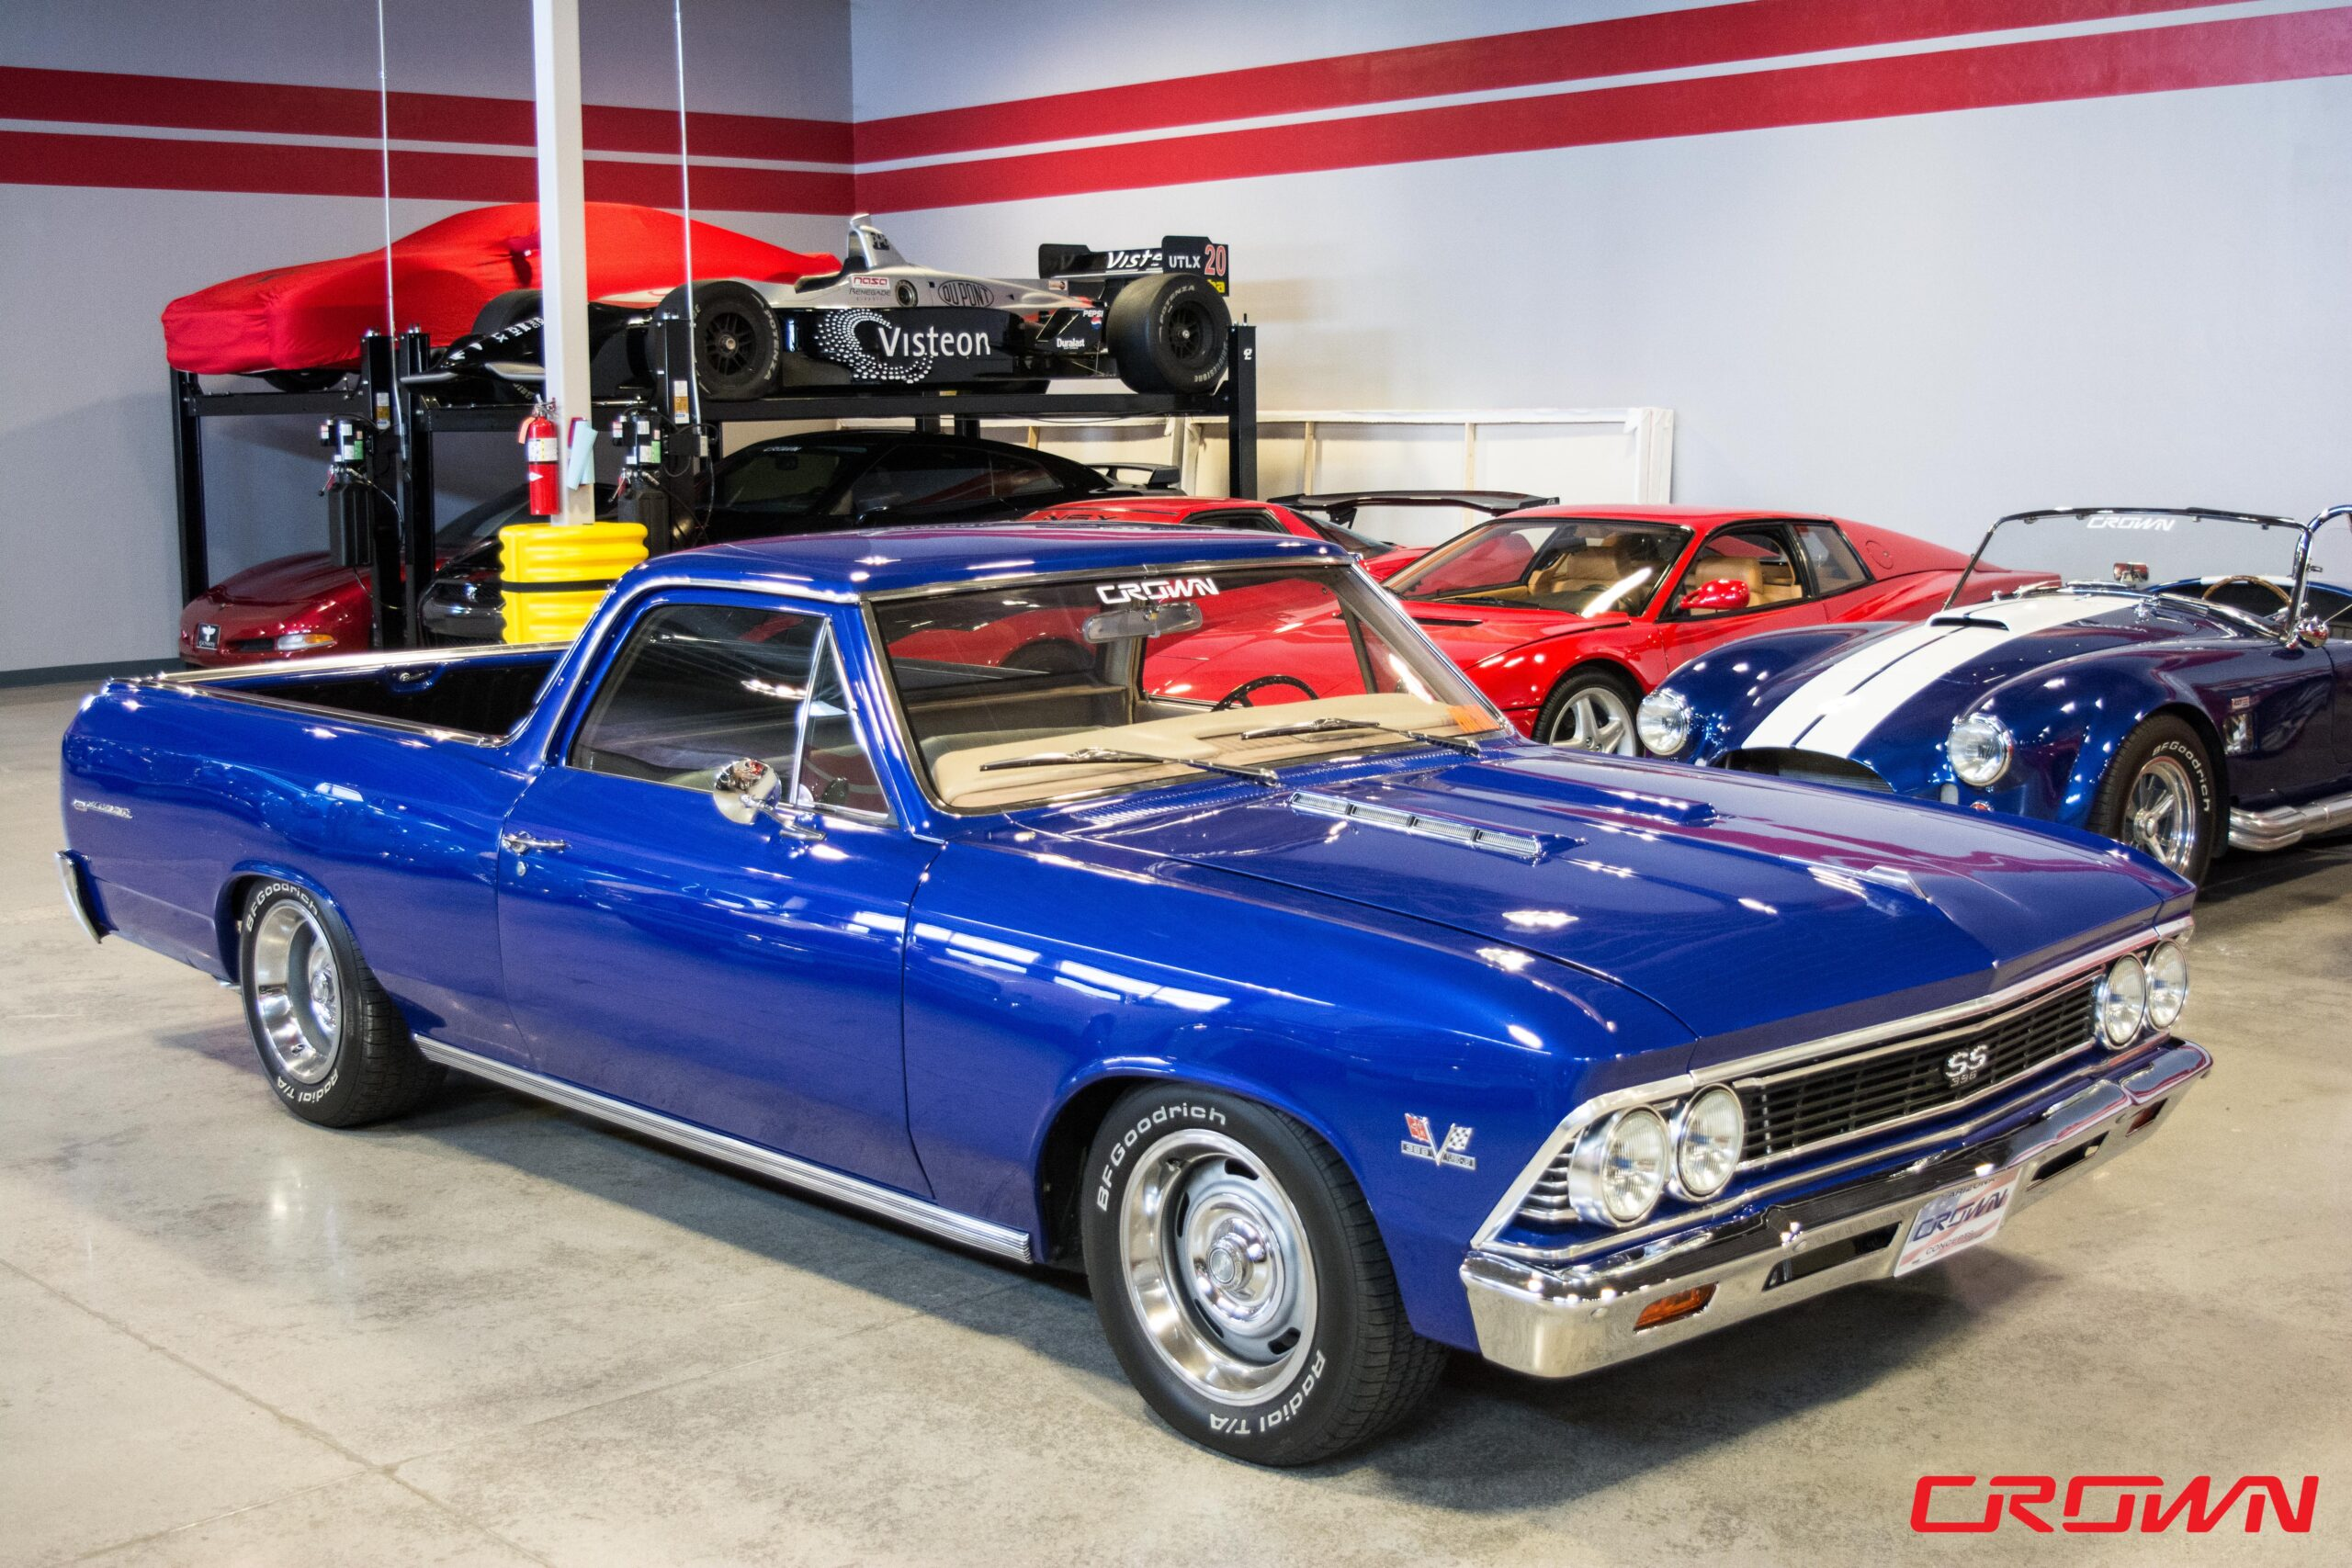 1966 Chevrolet El Camino Blue Crown Concepts